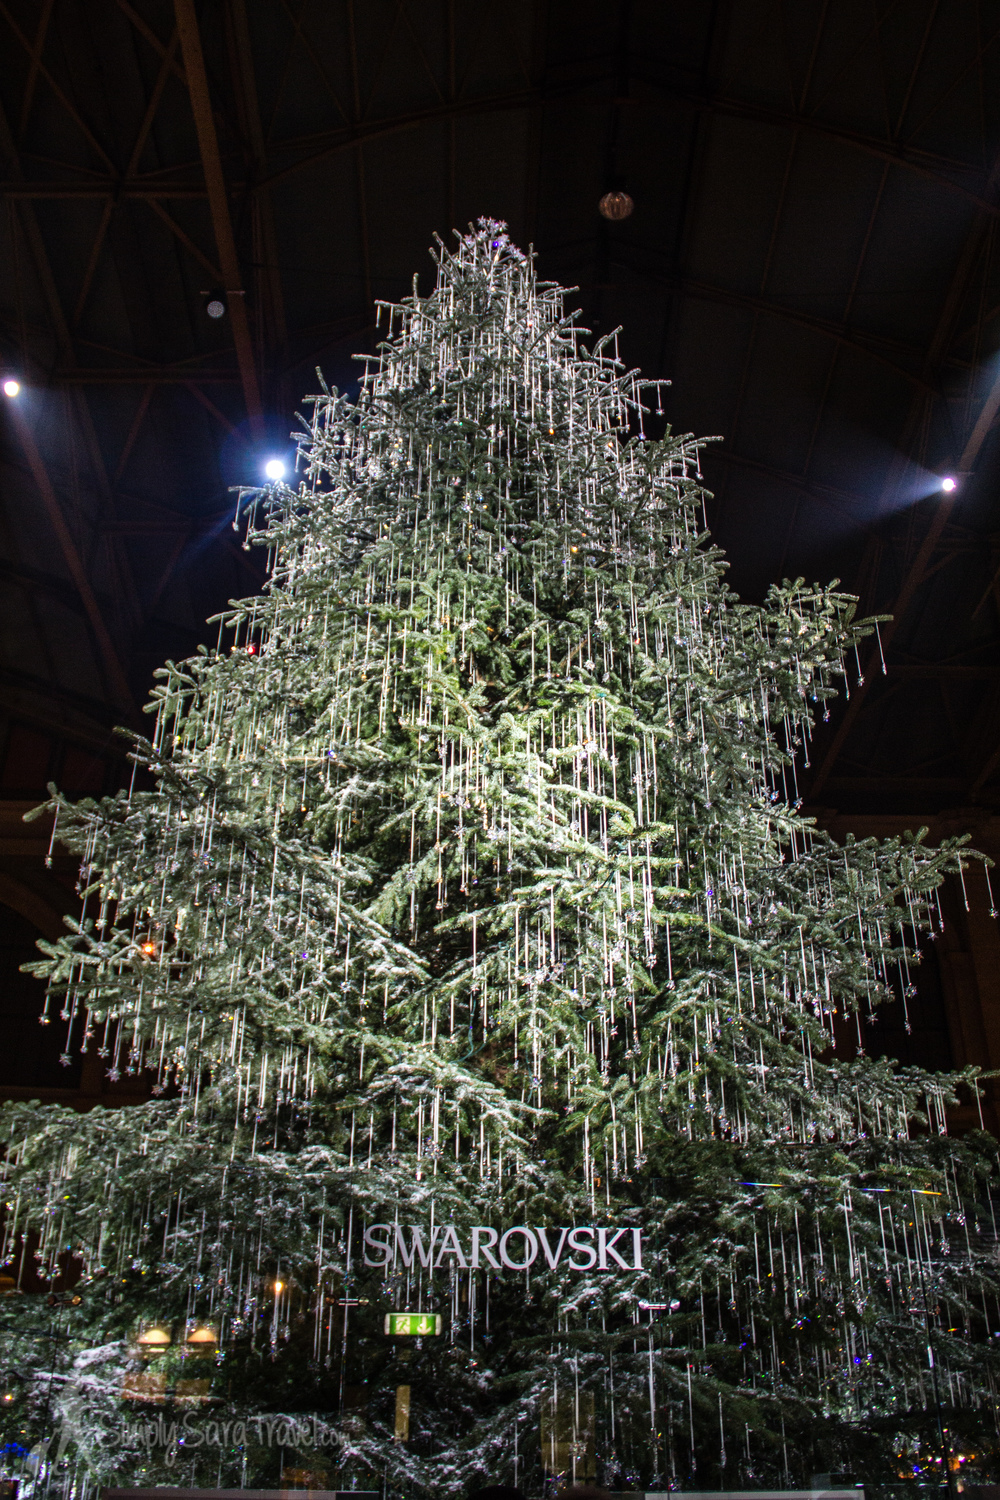 The most bling I've seen on a Christmas tree - Zurich's Swarovski-studded tree in the Hauptbahnhof